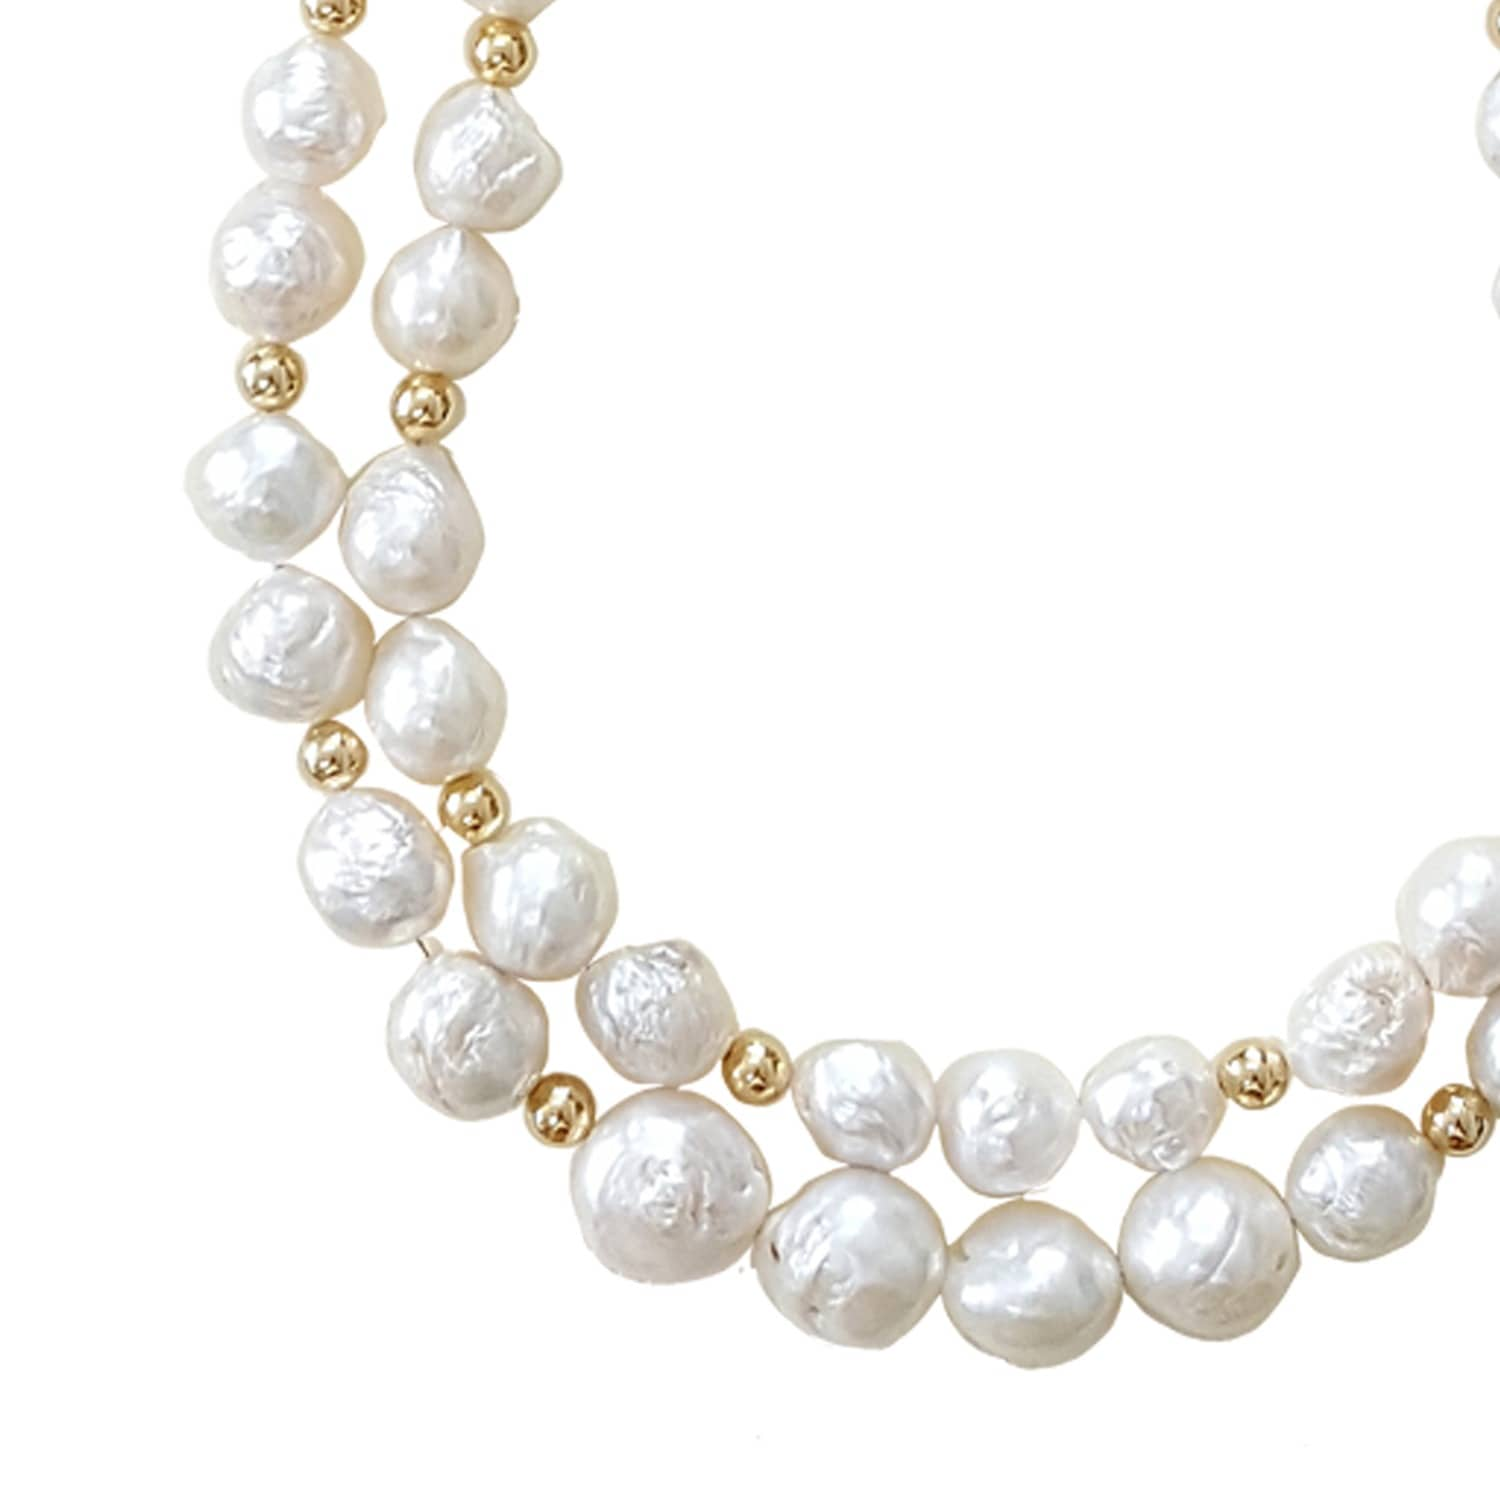 qualities pearl winterson irregularly shaped qualityofpearls of about buying the guide pearls grading